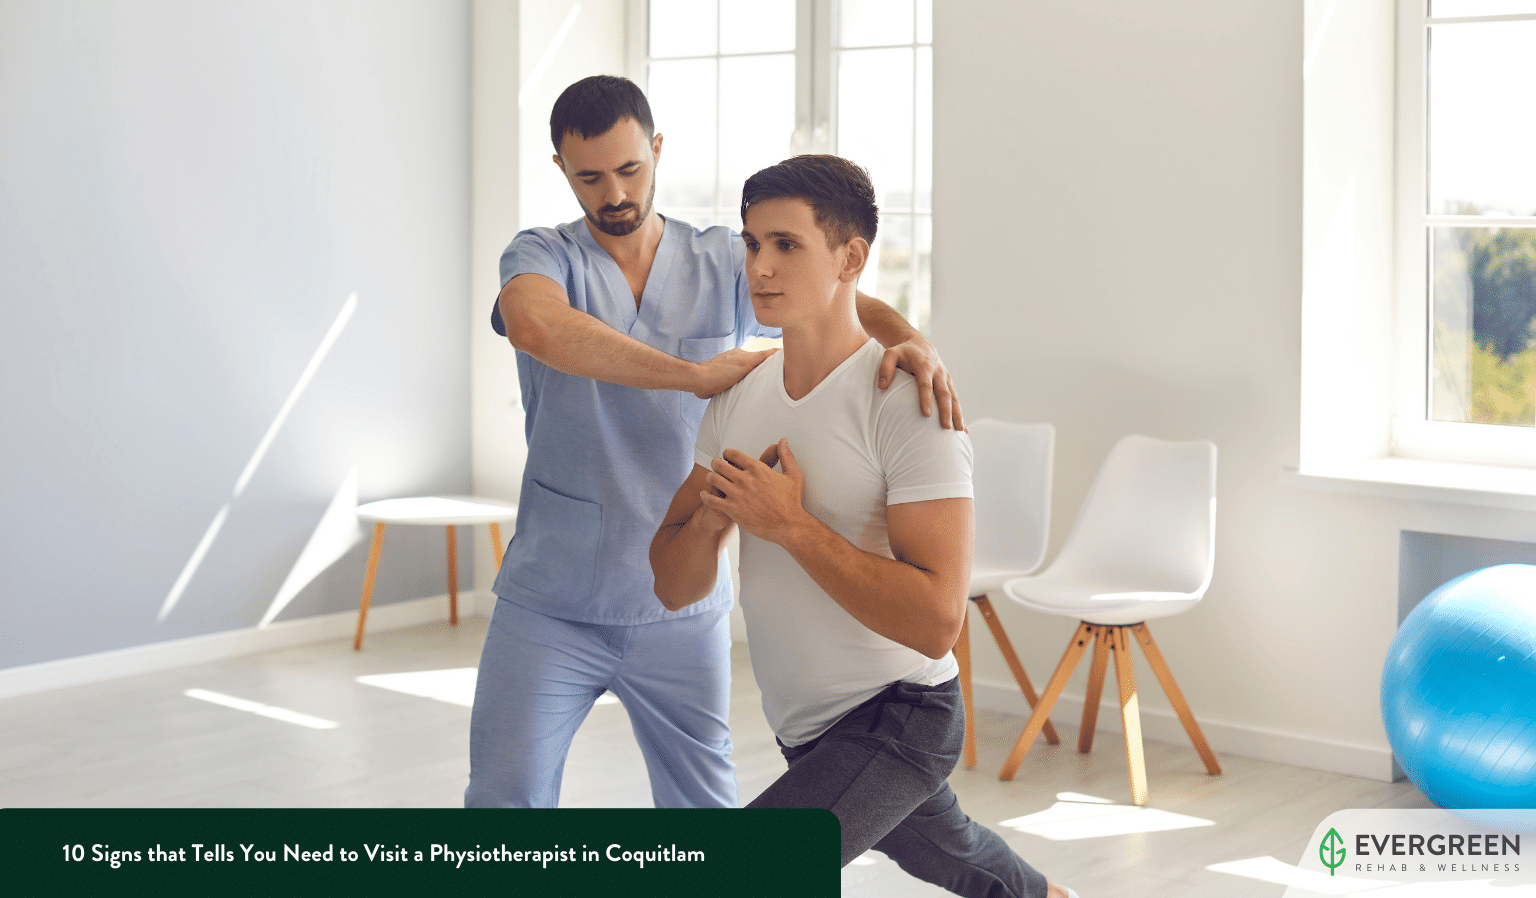 10 Signs that Tells You Need to Visit a Physiotherapist in Coquitlam